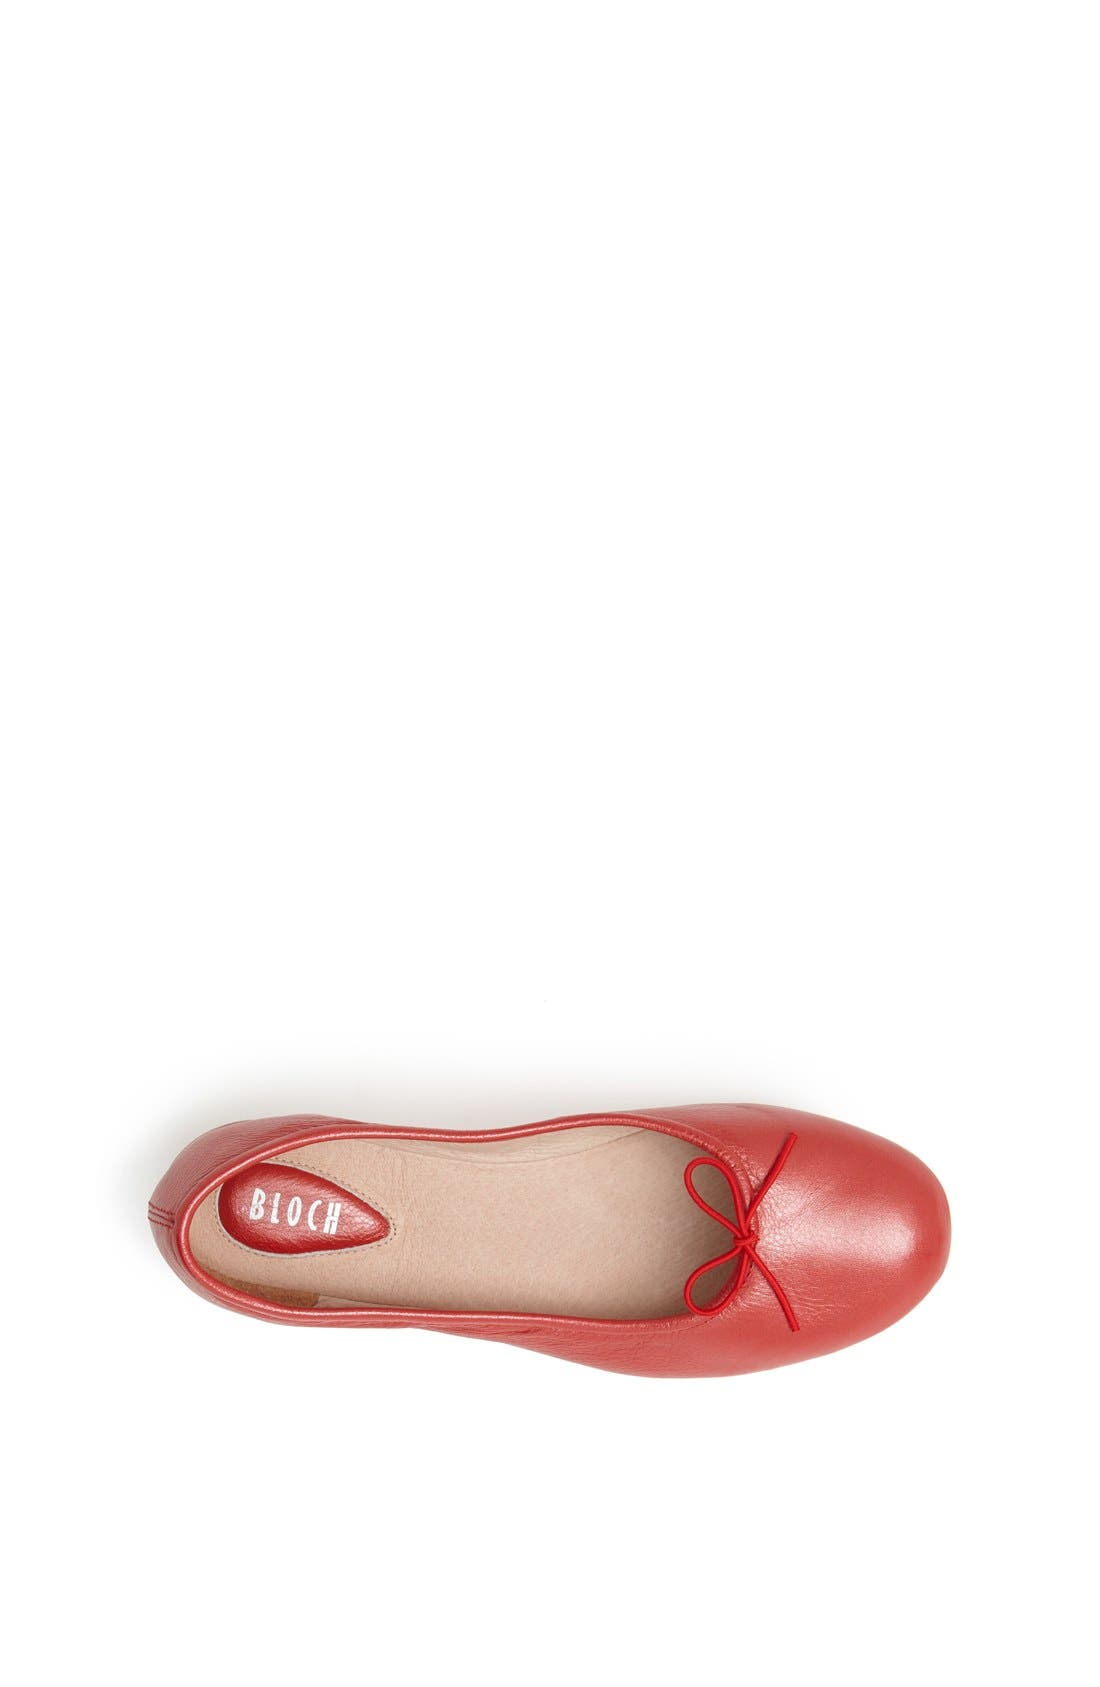 Alternate Image 3  - Bloch 'Arabella' Ballet Flat (Little Kid & Big Kid)